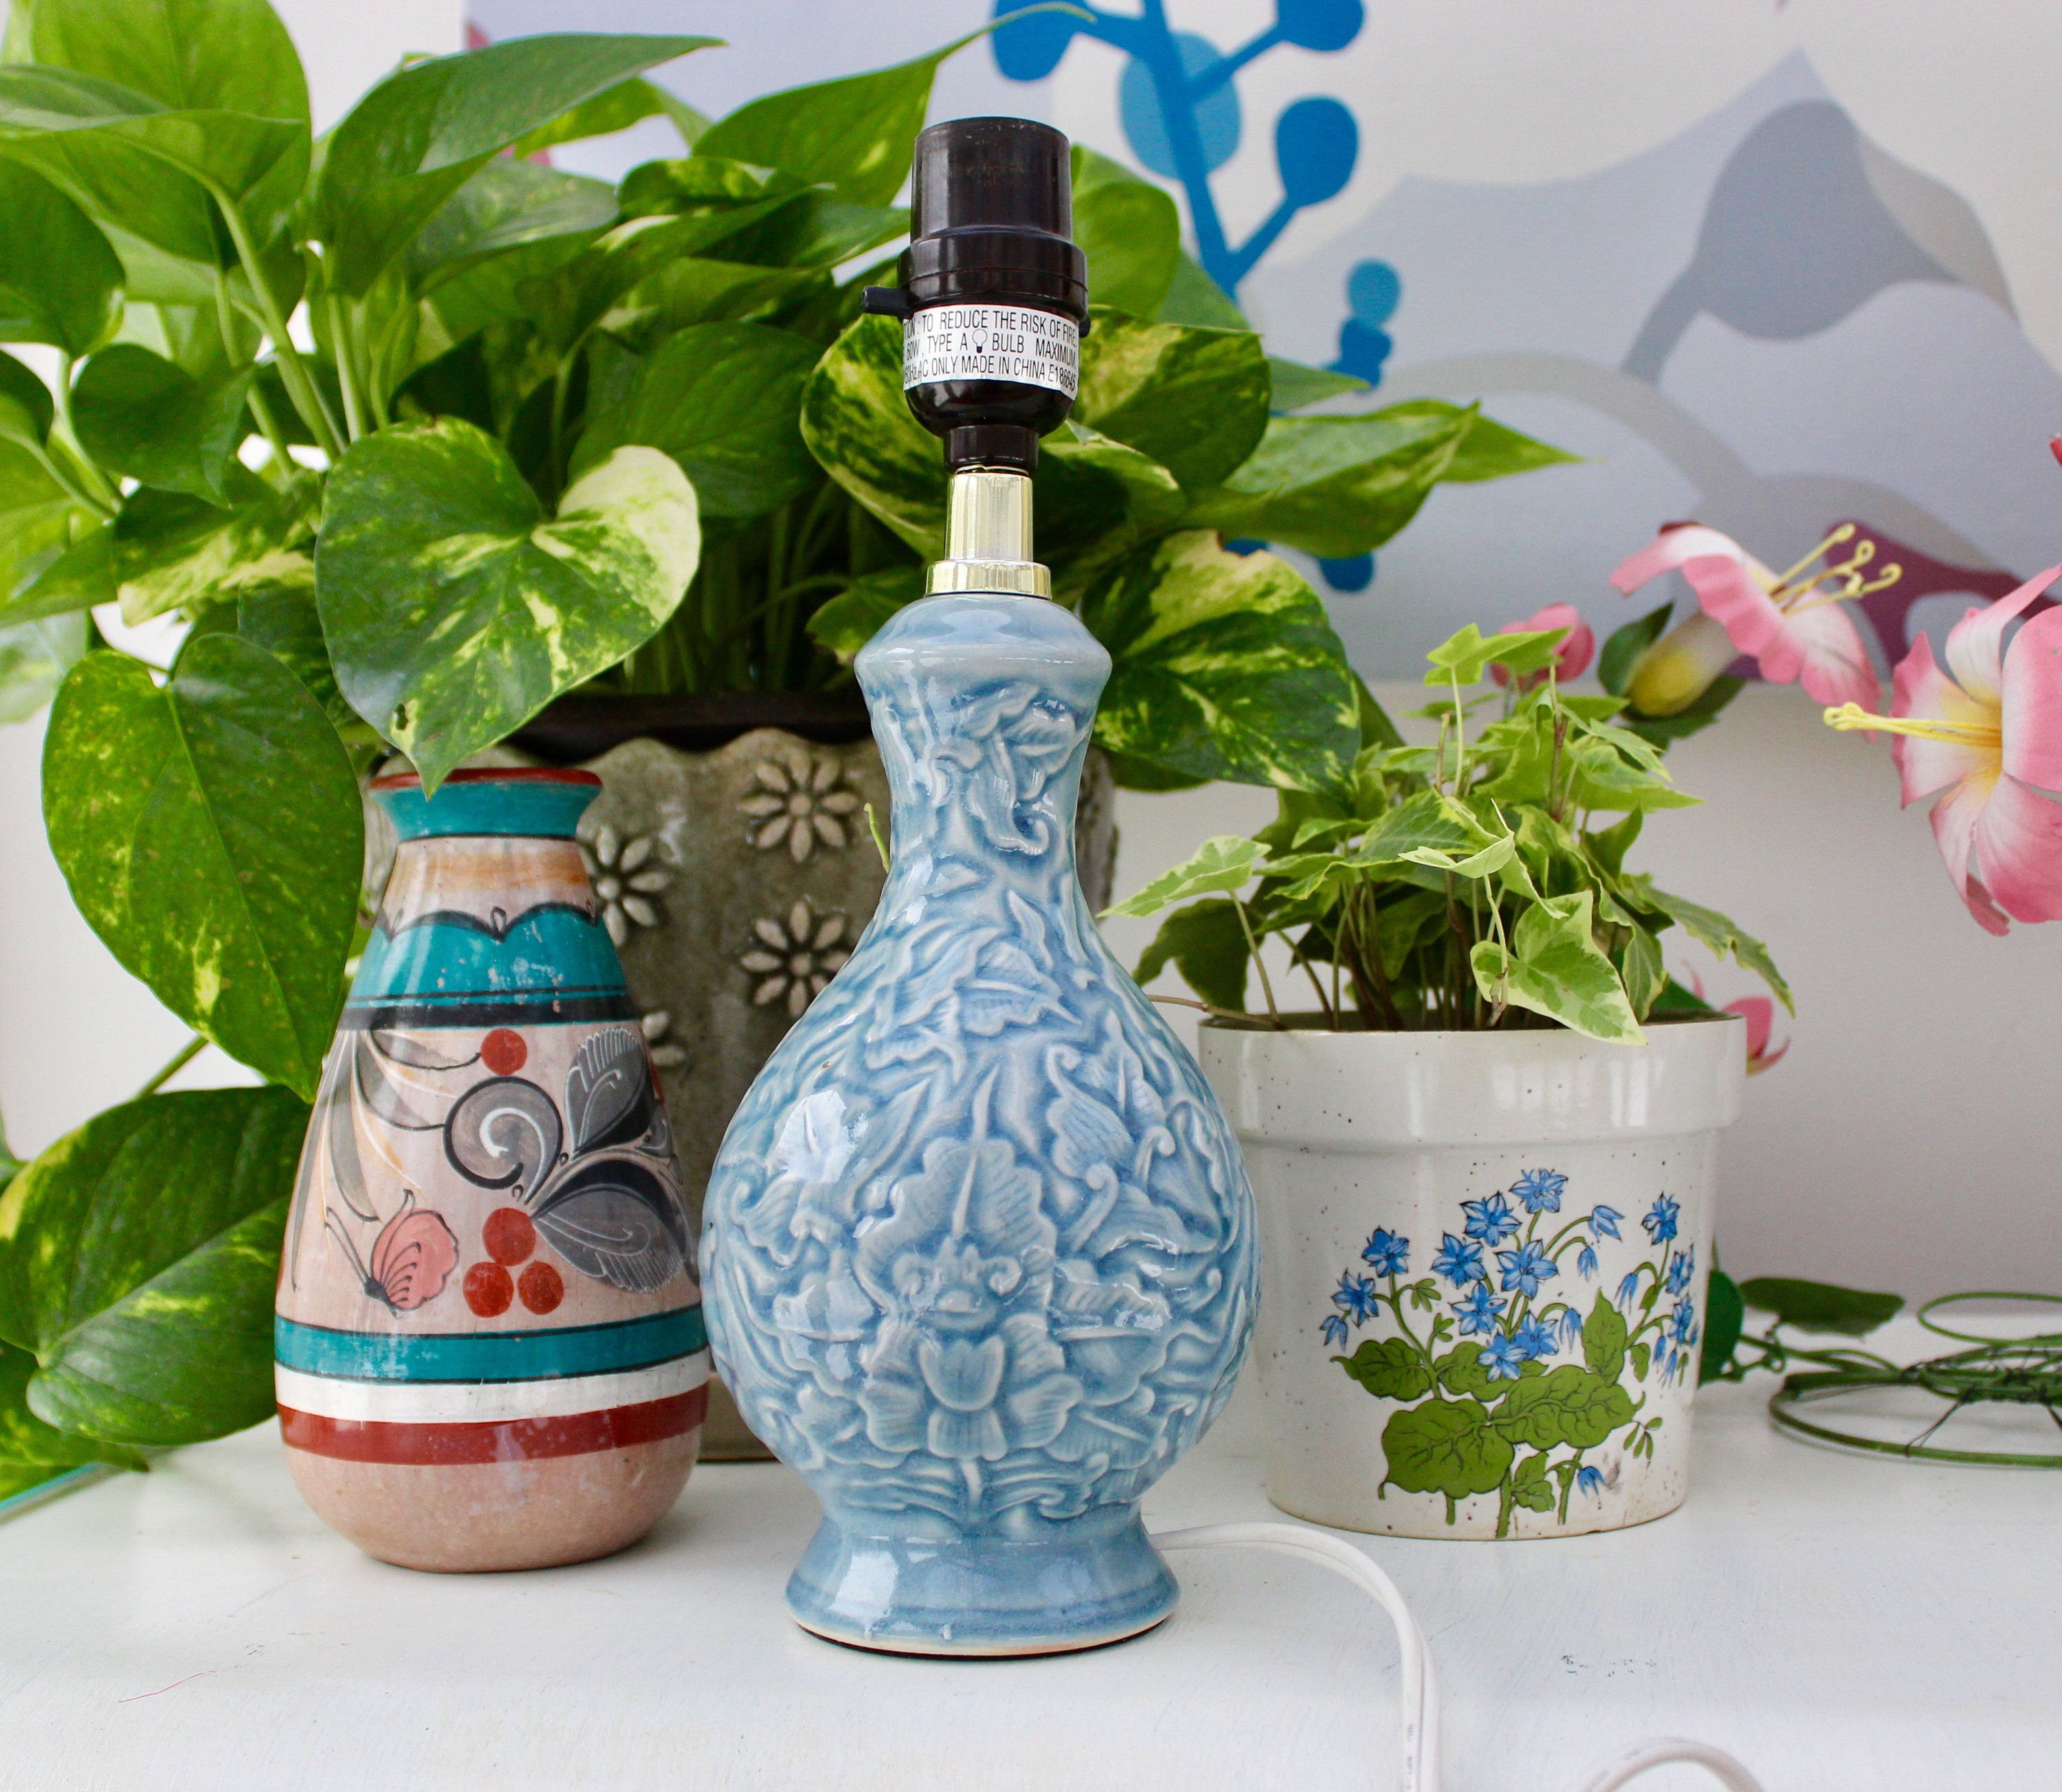 vintage blue ceramic lamp table small fullxfull accent pottery style decorative kitchen knobs and pulls farm end tables outdoor umbrella stand weights butcher block countertop